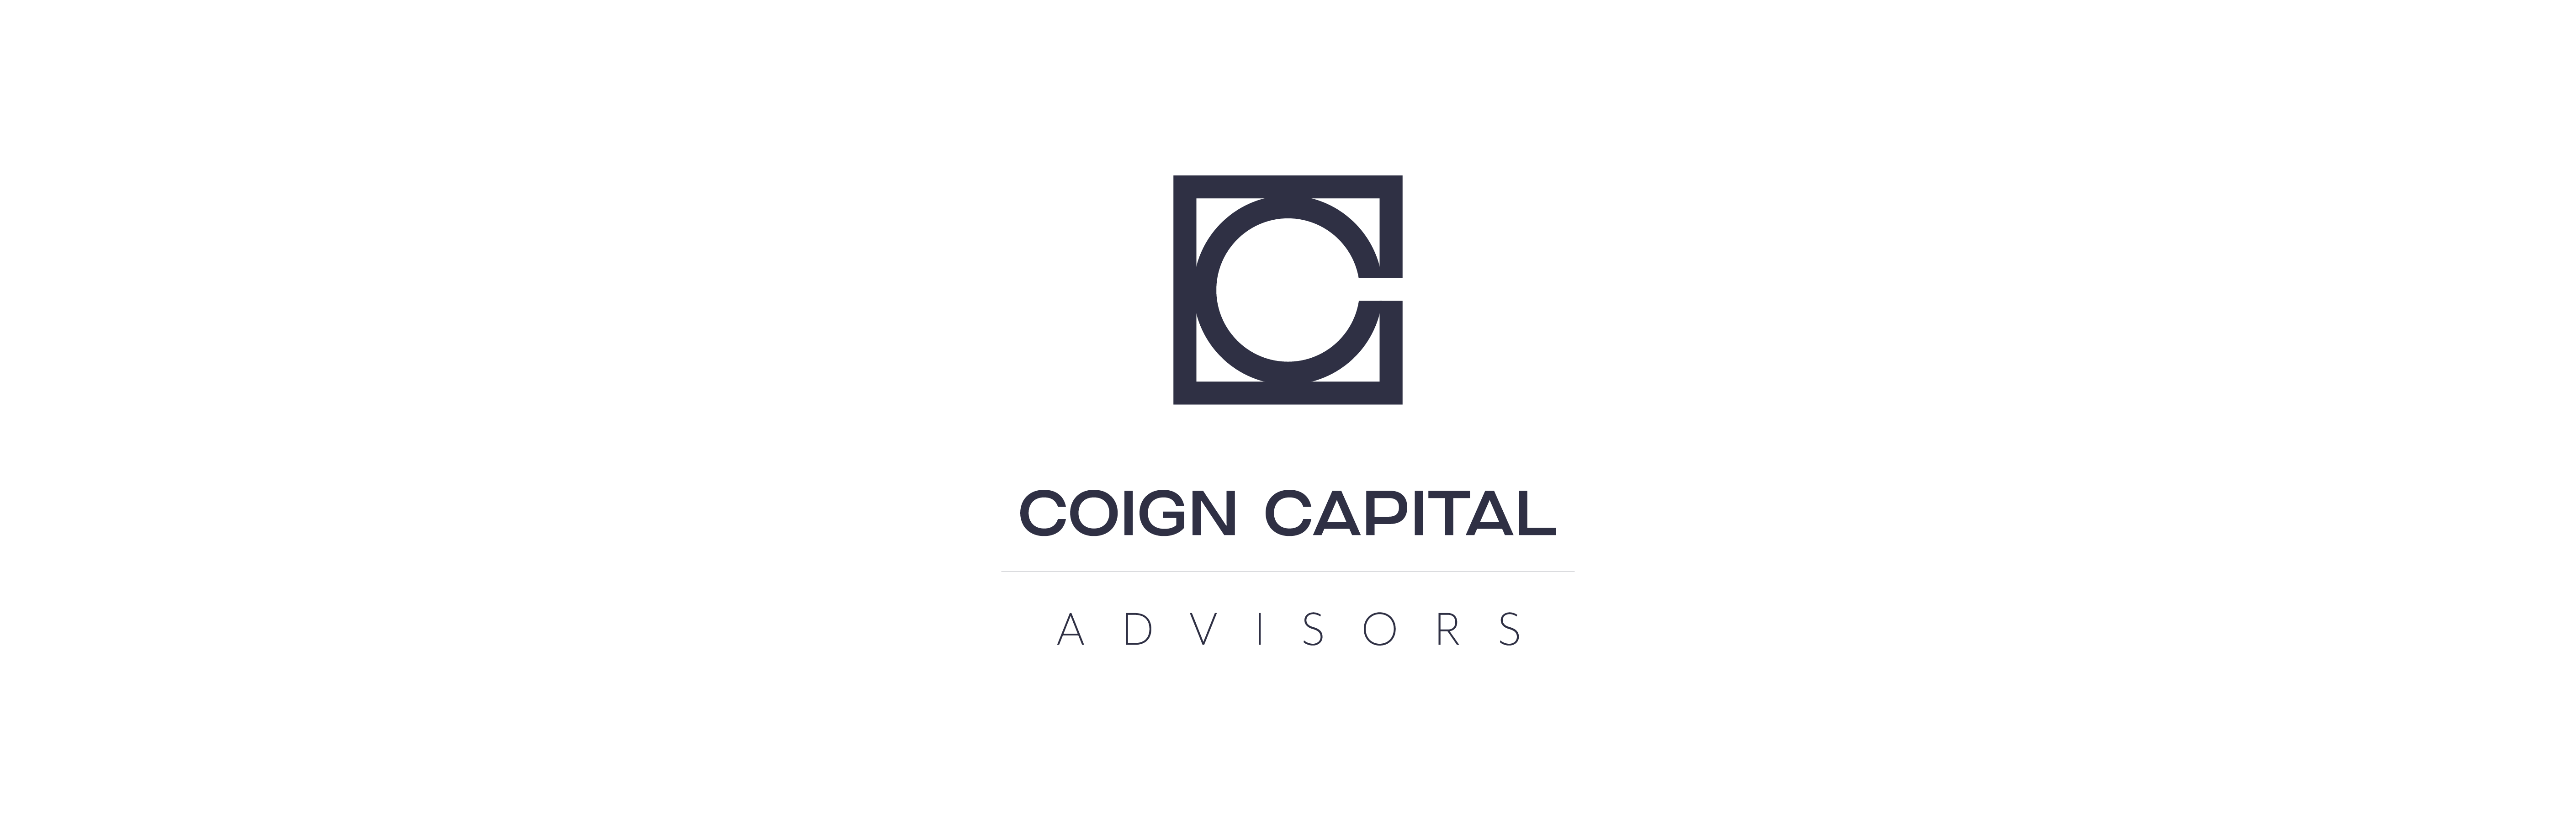 Coign Capital Advisors is a fee-based financial advisor & fiduciary. We provide financial planning & wealth management services in Utah, USA, investors, legacy, asset management, capital, markets, estate, retirement, finance